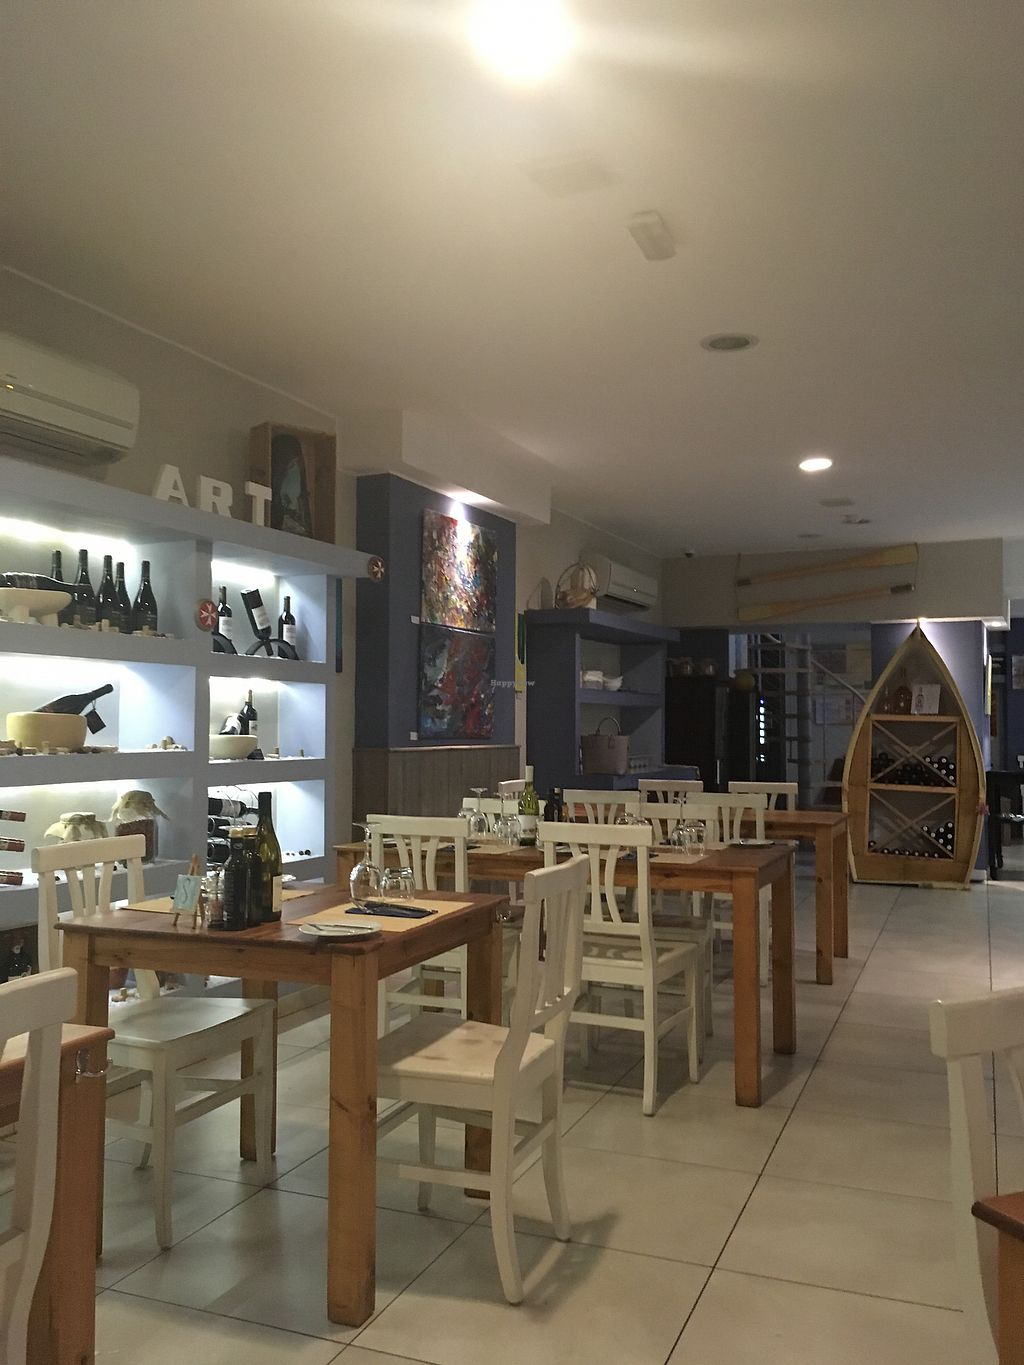 """Photo of Two Buoys Bistro  by <a href=""""/members/profile/monisonfire"""">monisonfire</a> <br/>interior  <br/> January 7, 2018  - <a href='/contact/abuse/image/105720/344075'>Report</a>"""